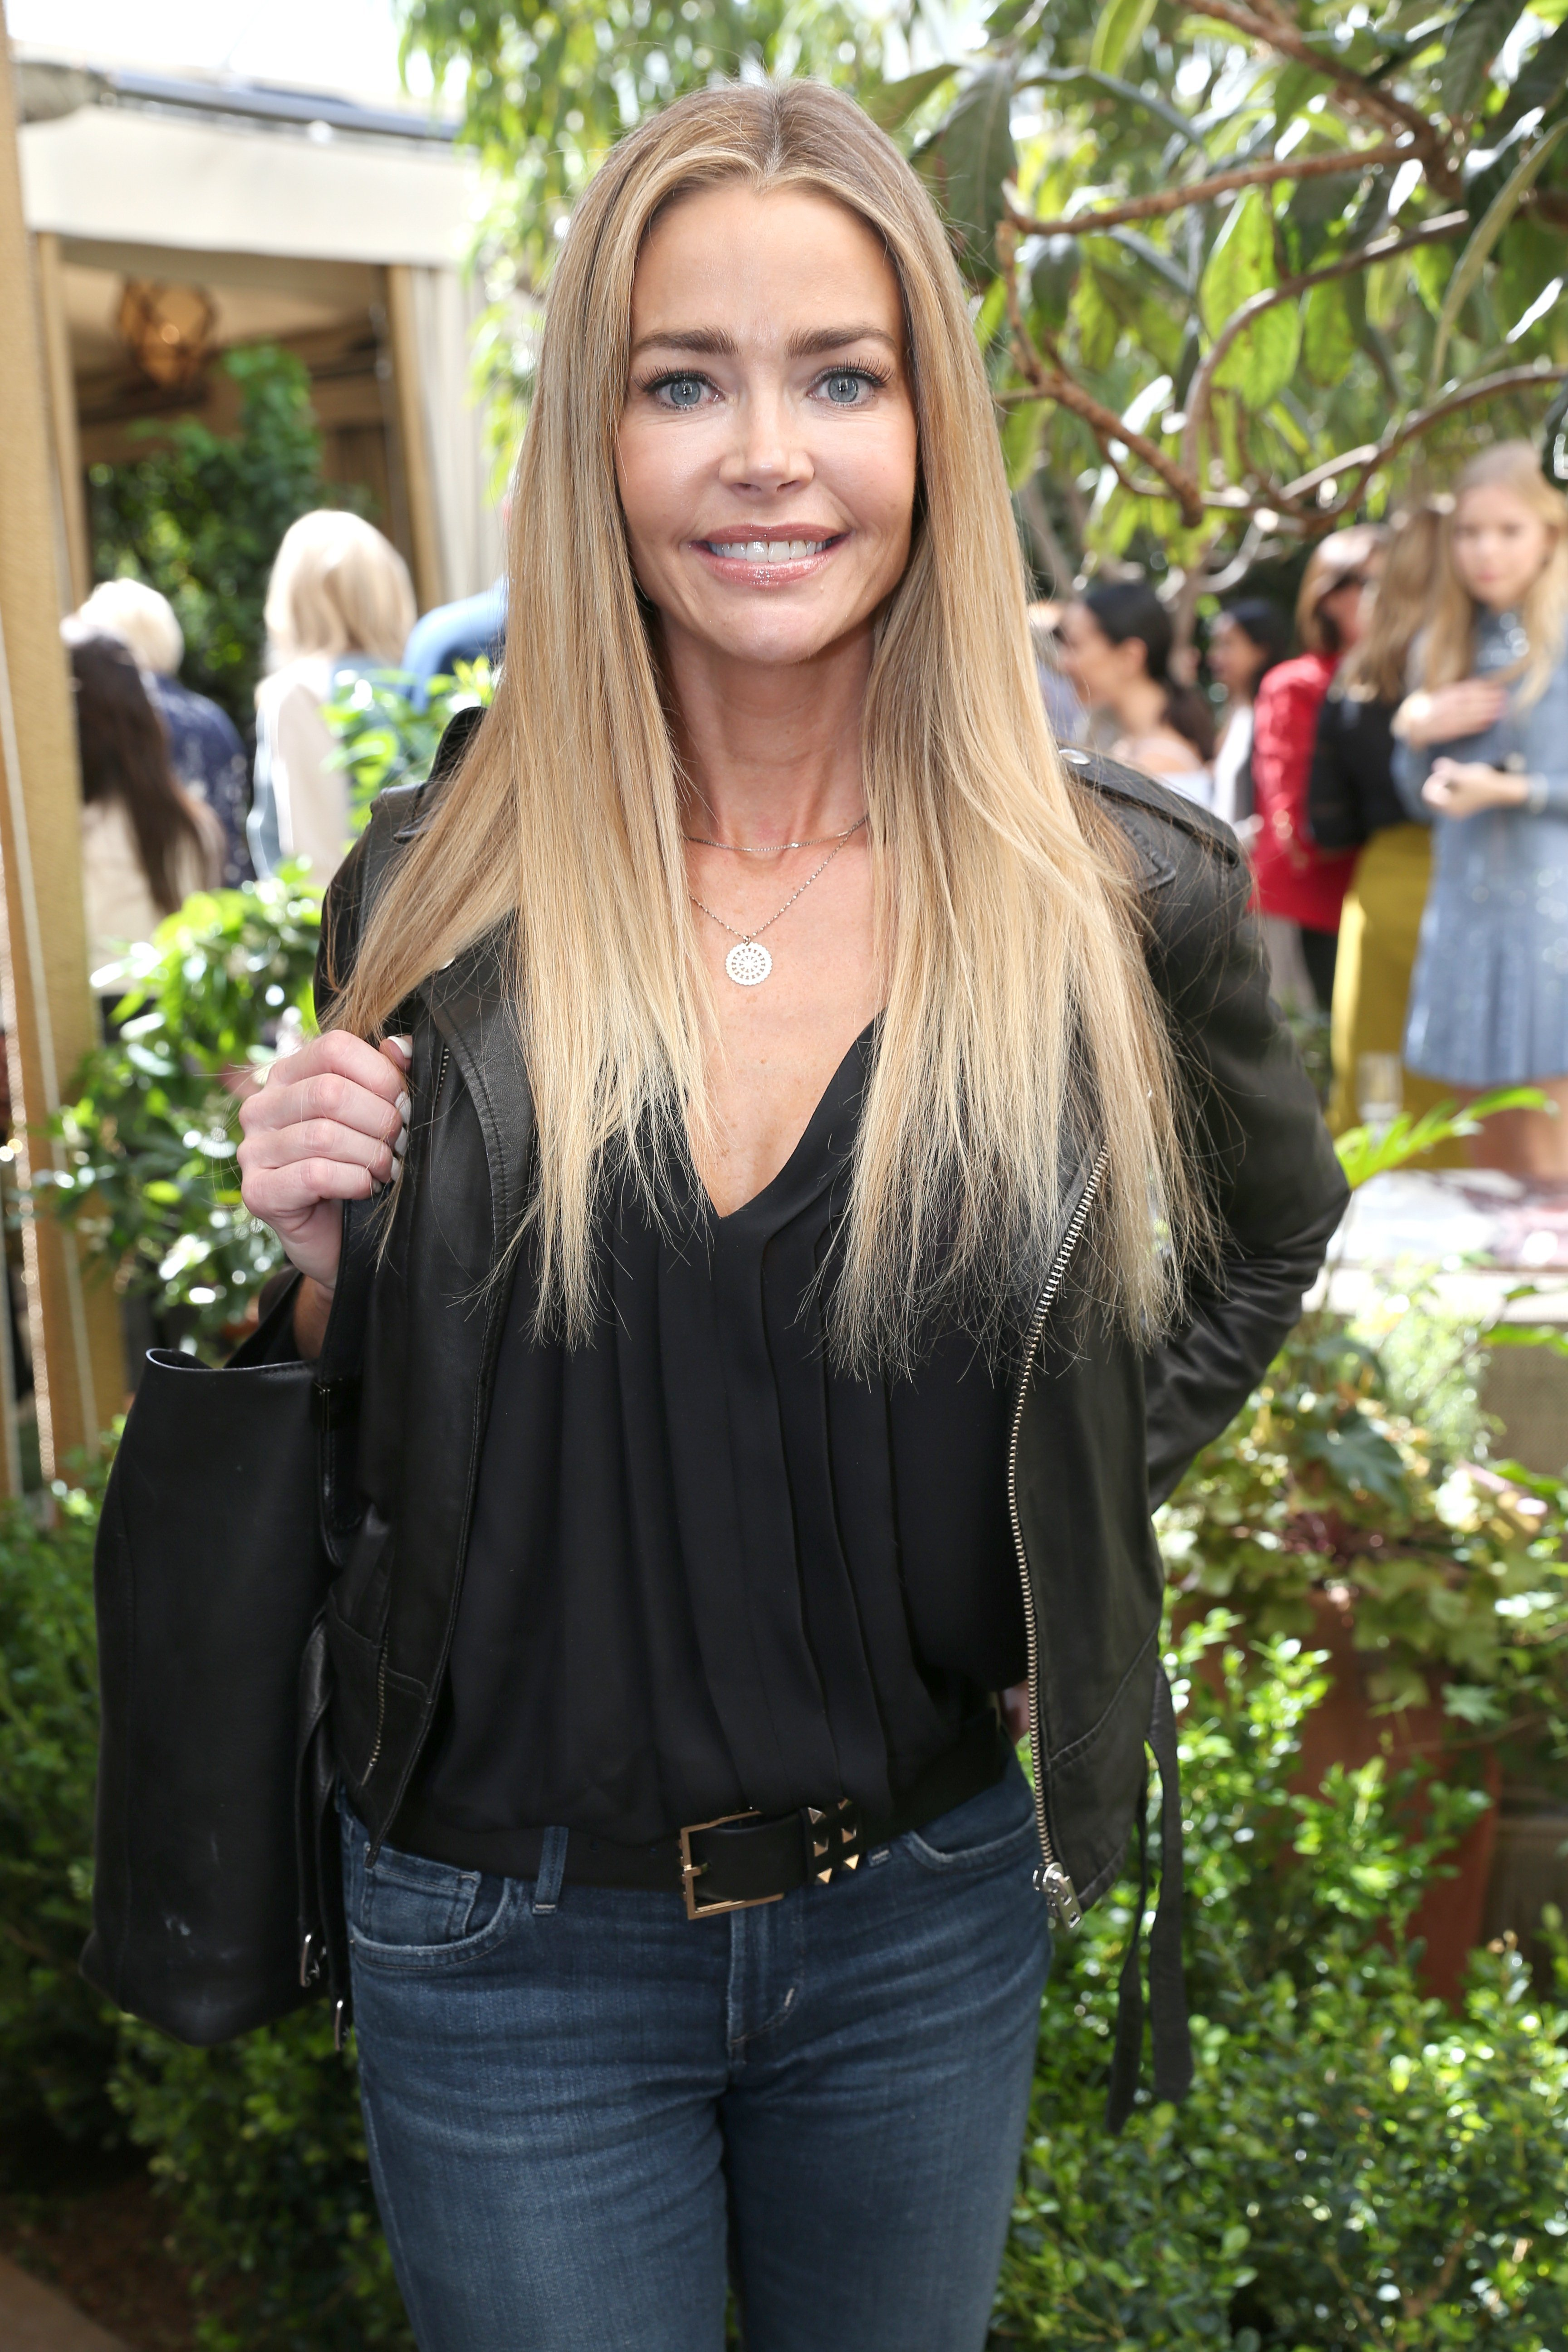 Denise Richards during the Net-A-Porter lunch on February 24, 2017, in Los Angeles, California. | Source: Getty Images